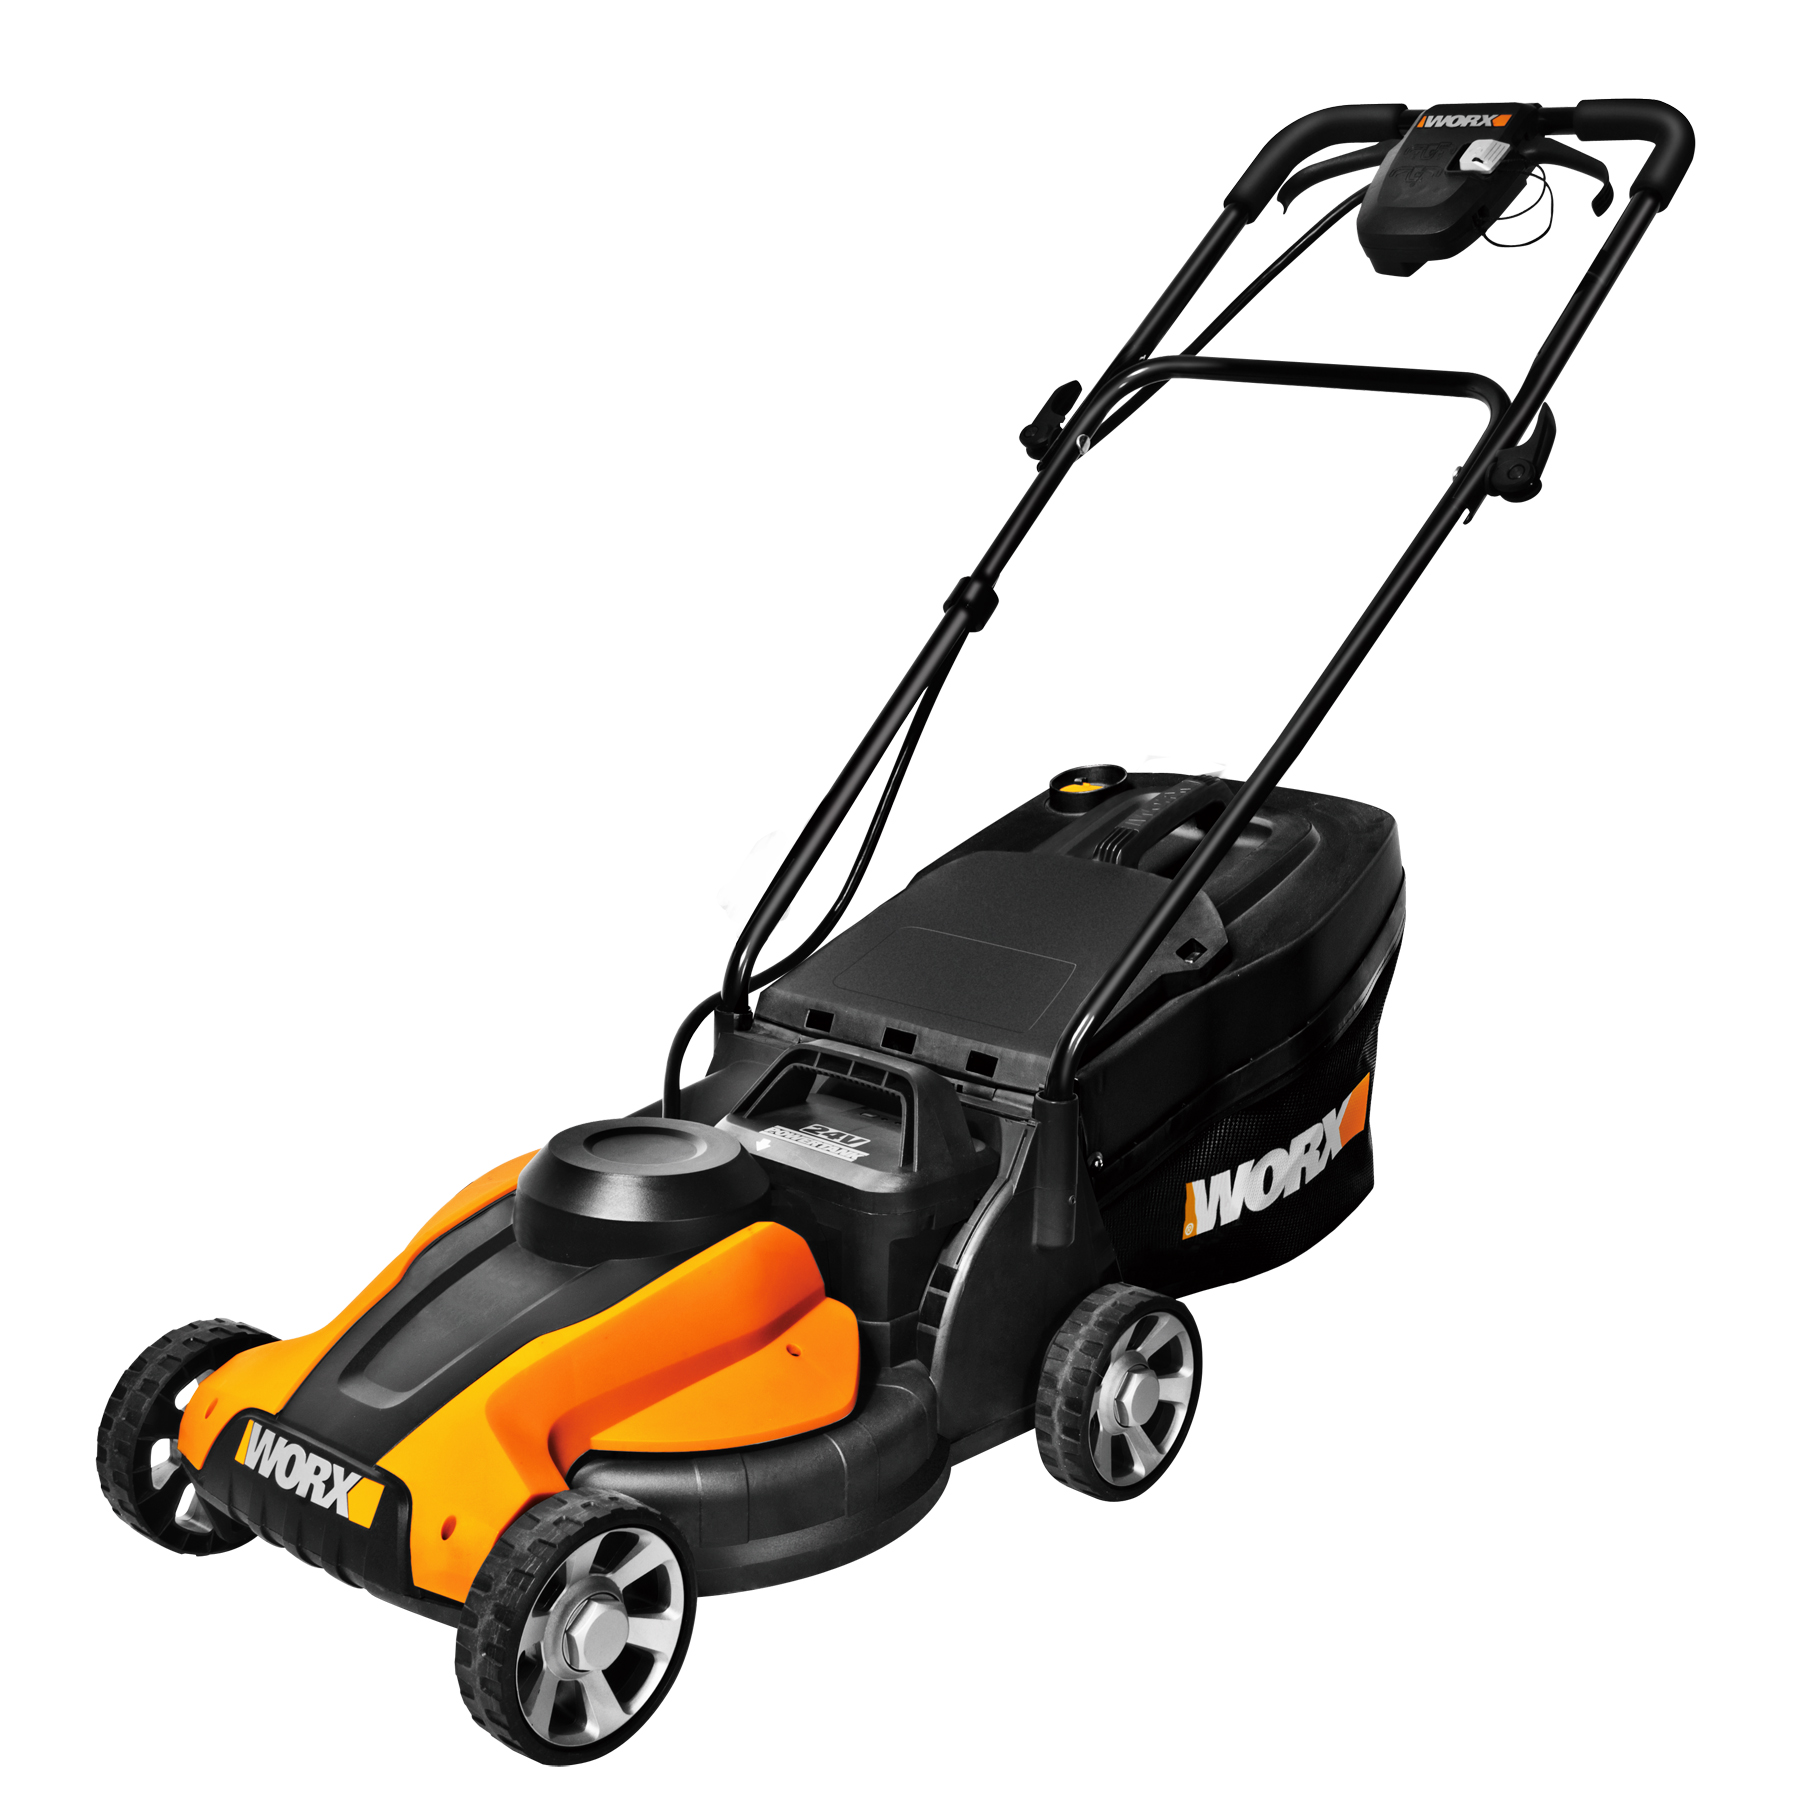 New Worx 14 In Cordless Lawn Mower Is Efficient